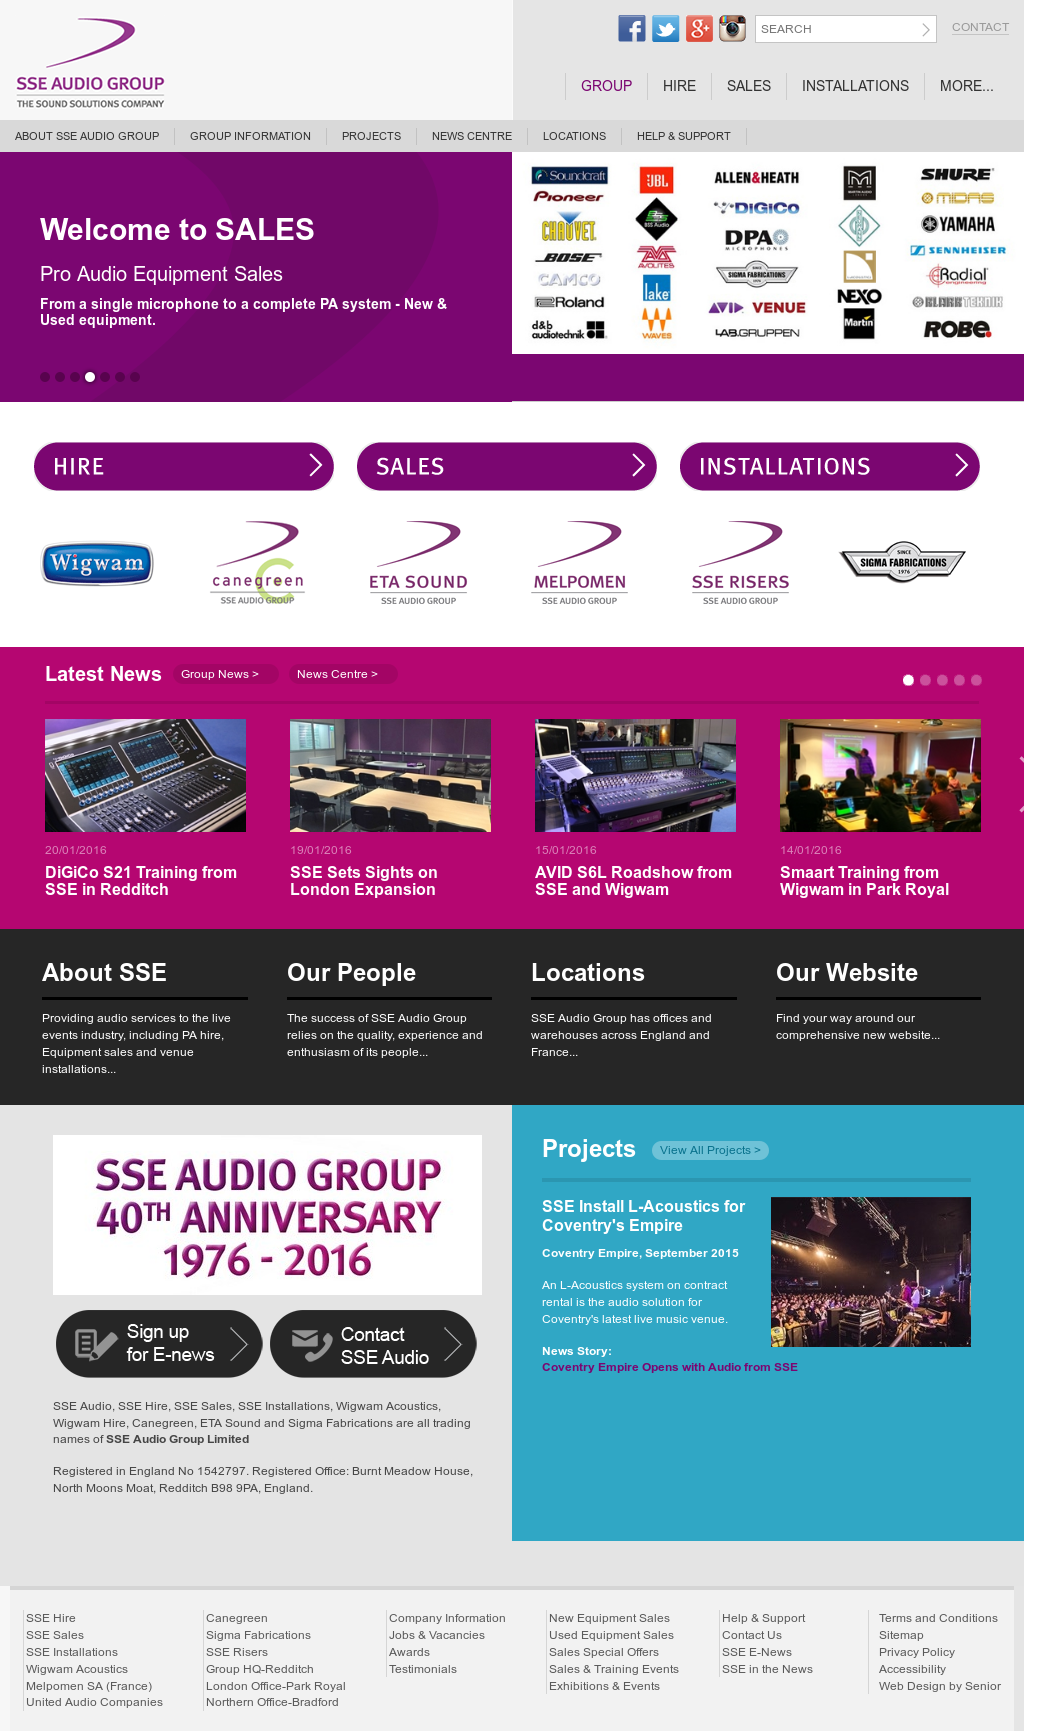 SSE Audio Group Competitors, Revenue and Employees - Owler